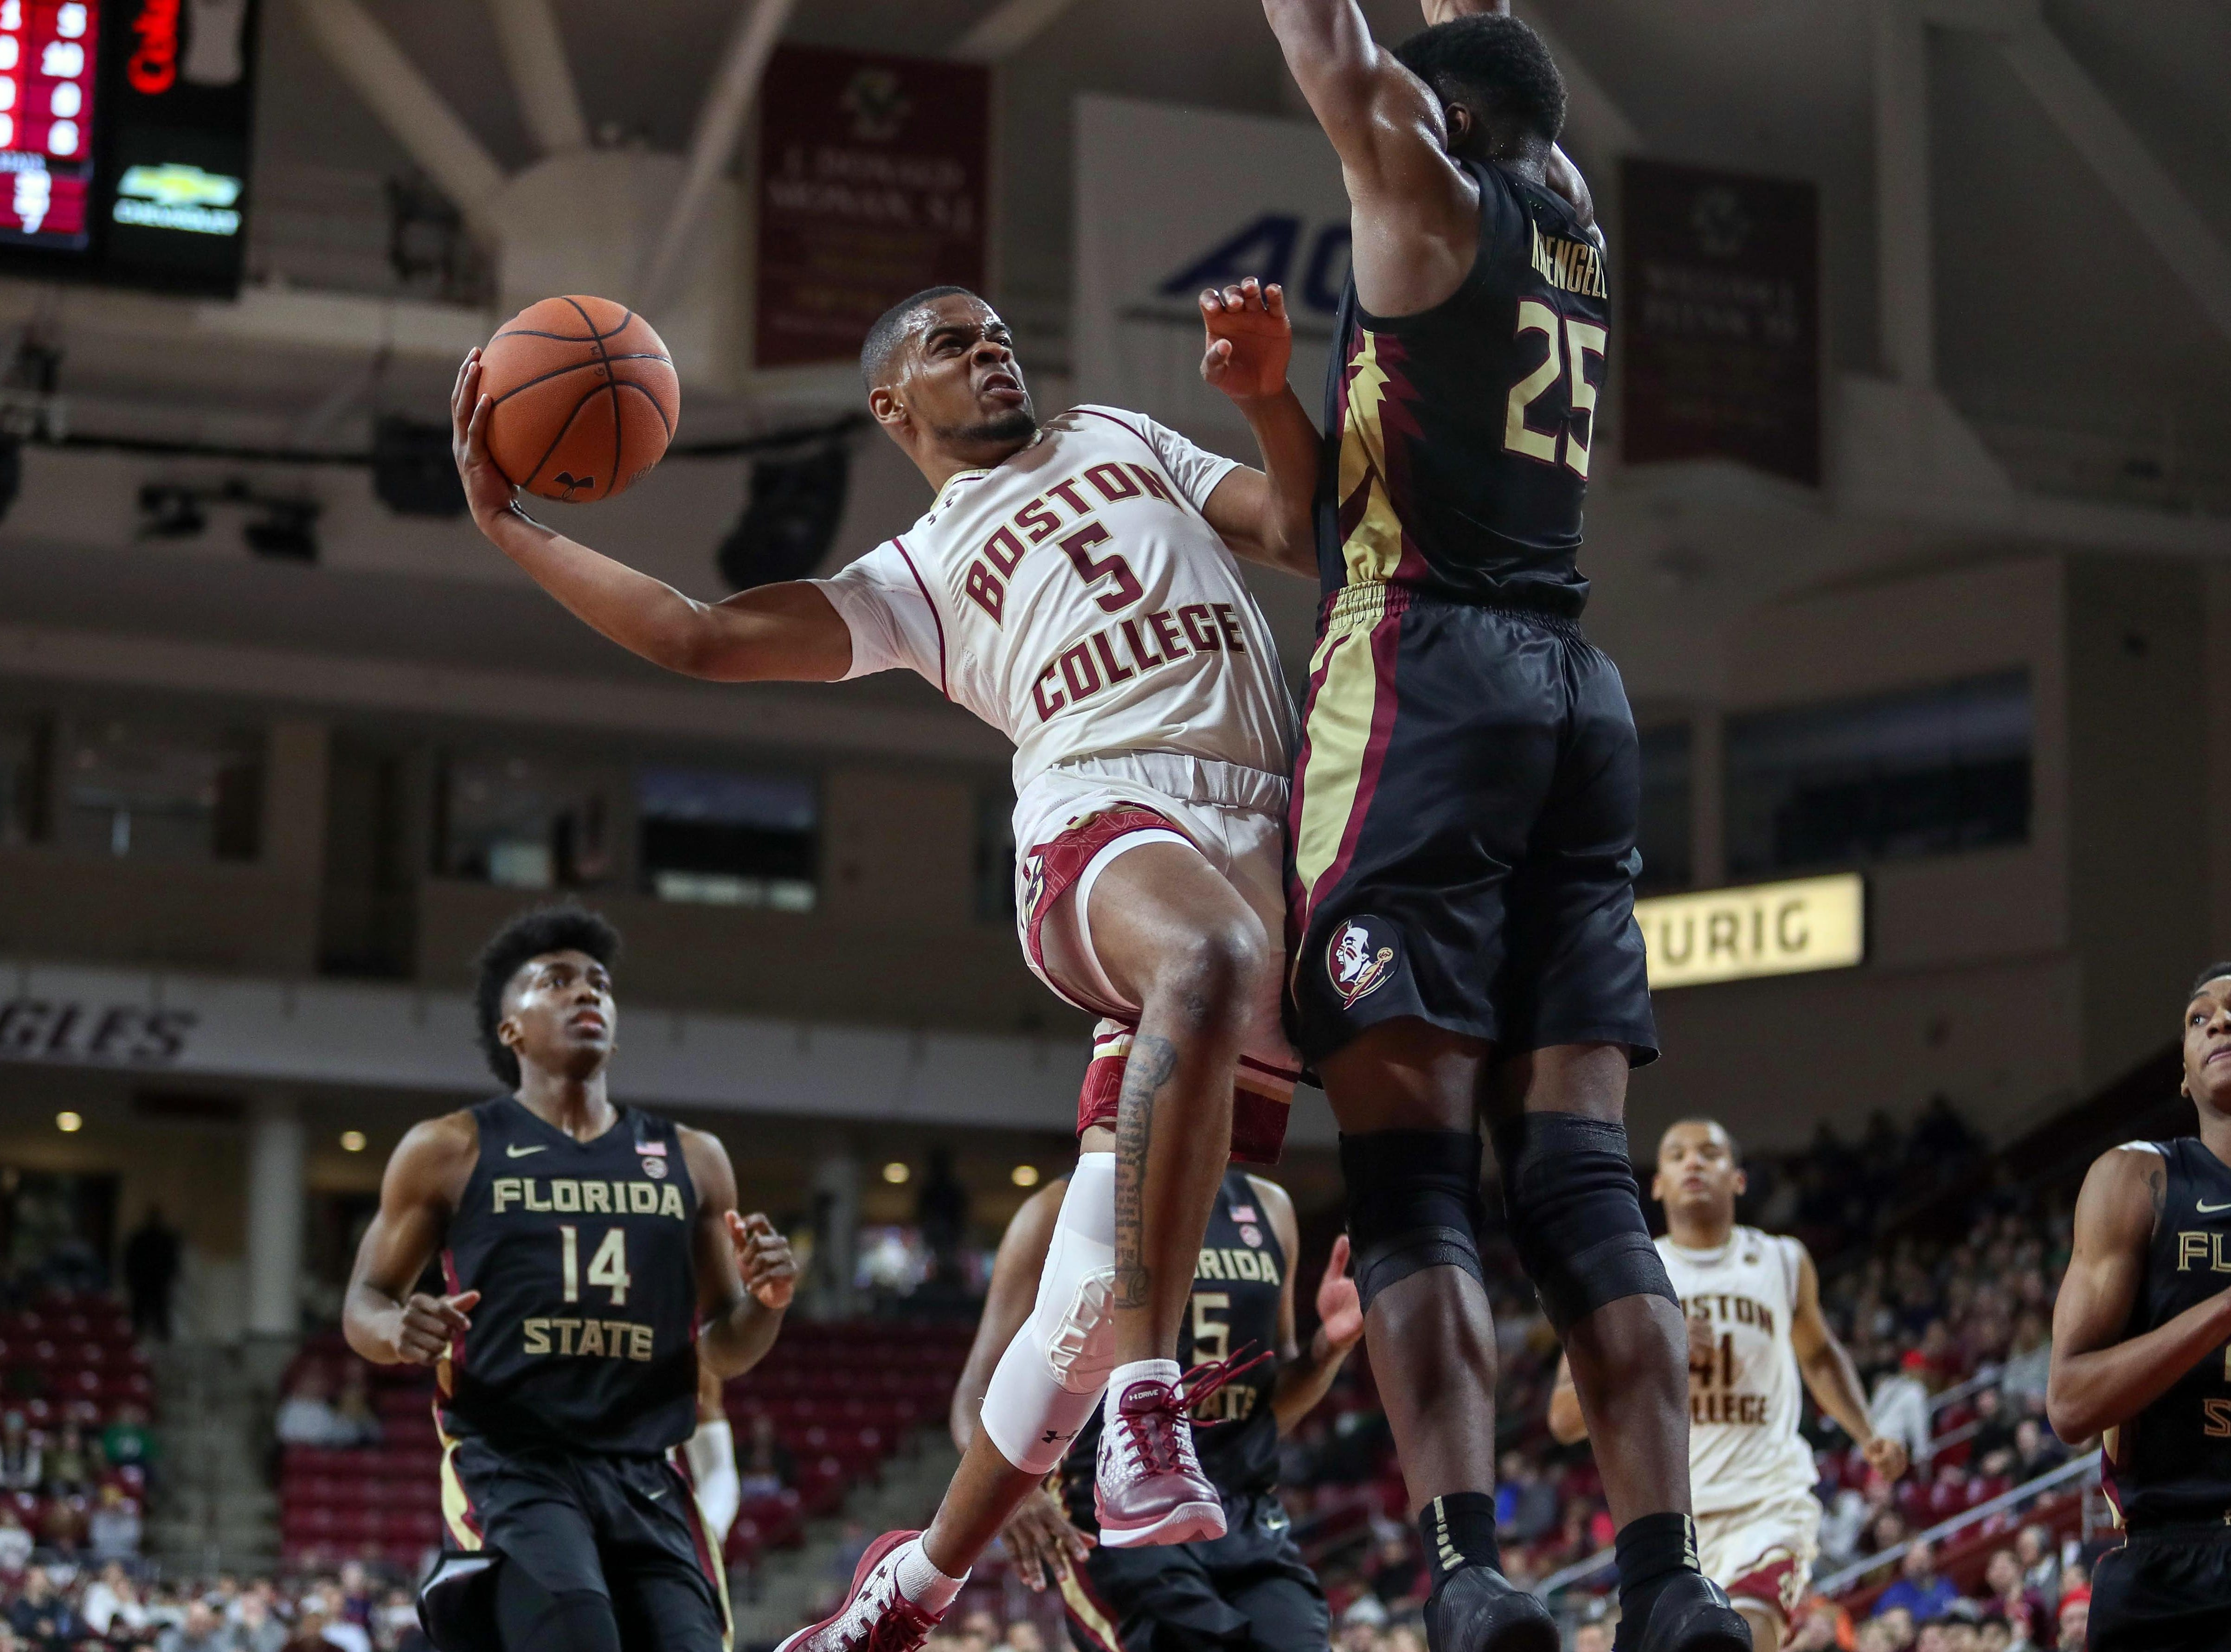 Jan 20, 2019; Chestnut Hill, MA, USA; Boston College Eagles guard Wynston Tabbs (5) shoots against Florida State Seminoles forward Mfiondu Kabengele (25) during the first half at Conte Forum. Mandatory Credit: Paul Rutherford-USA TODAY Sports